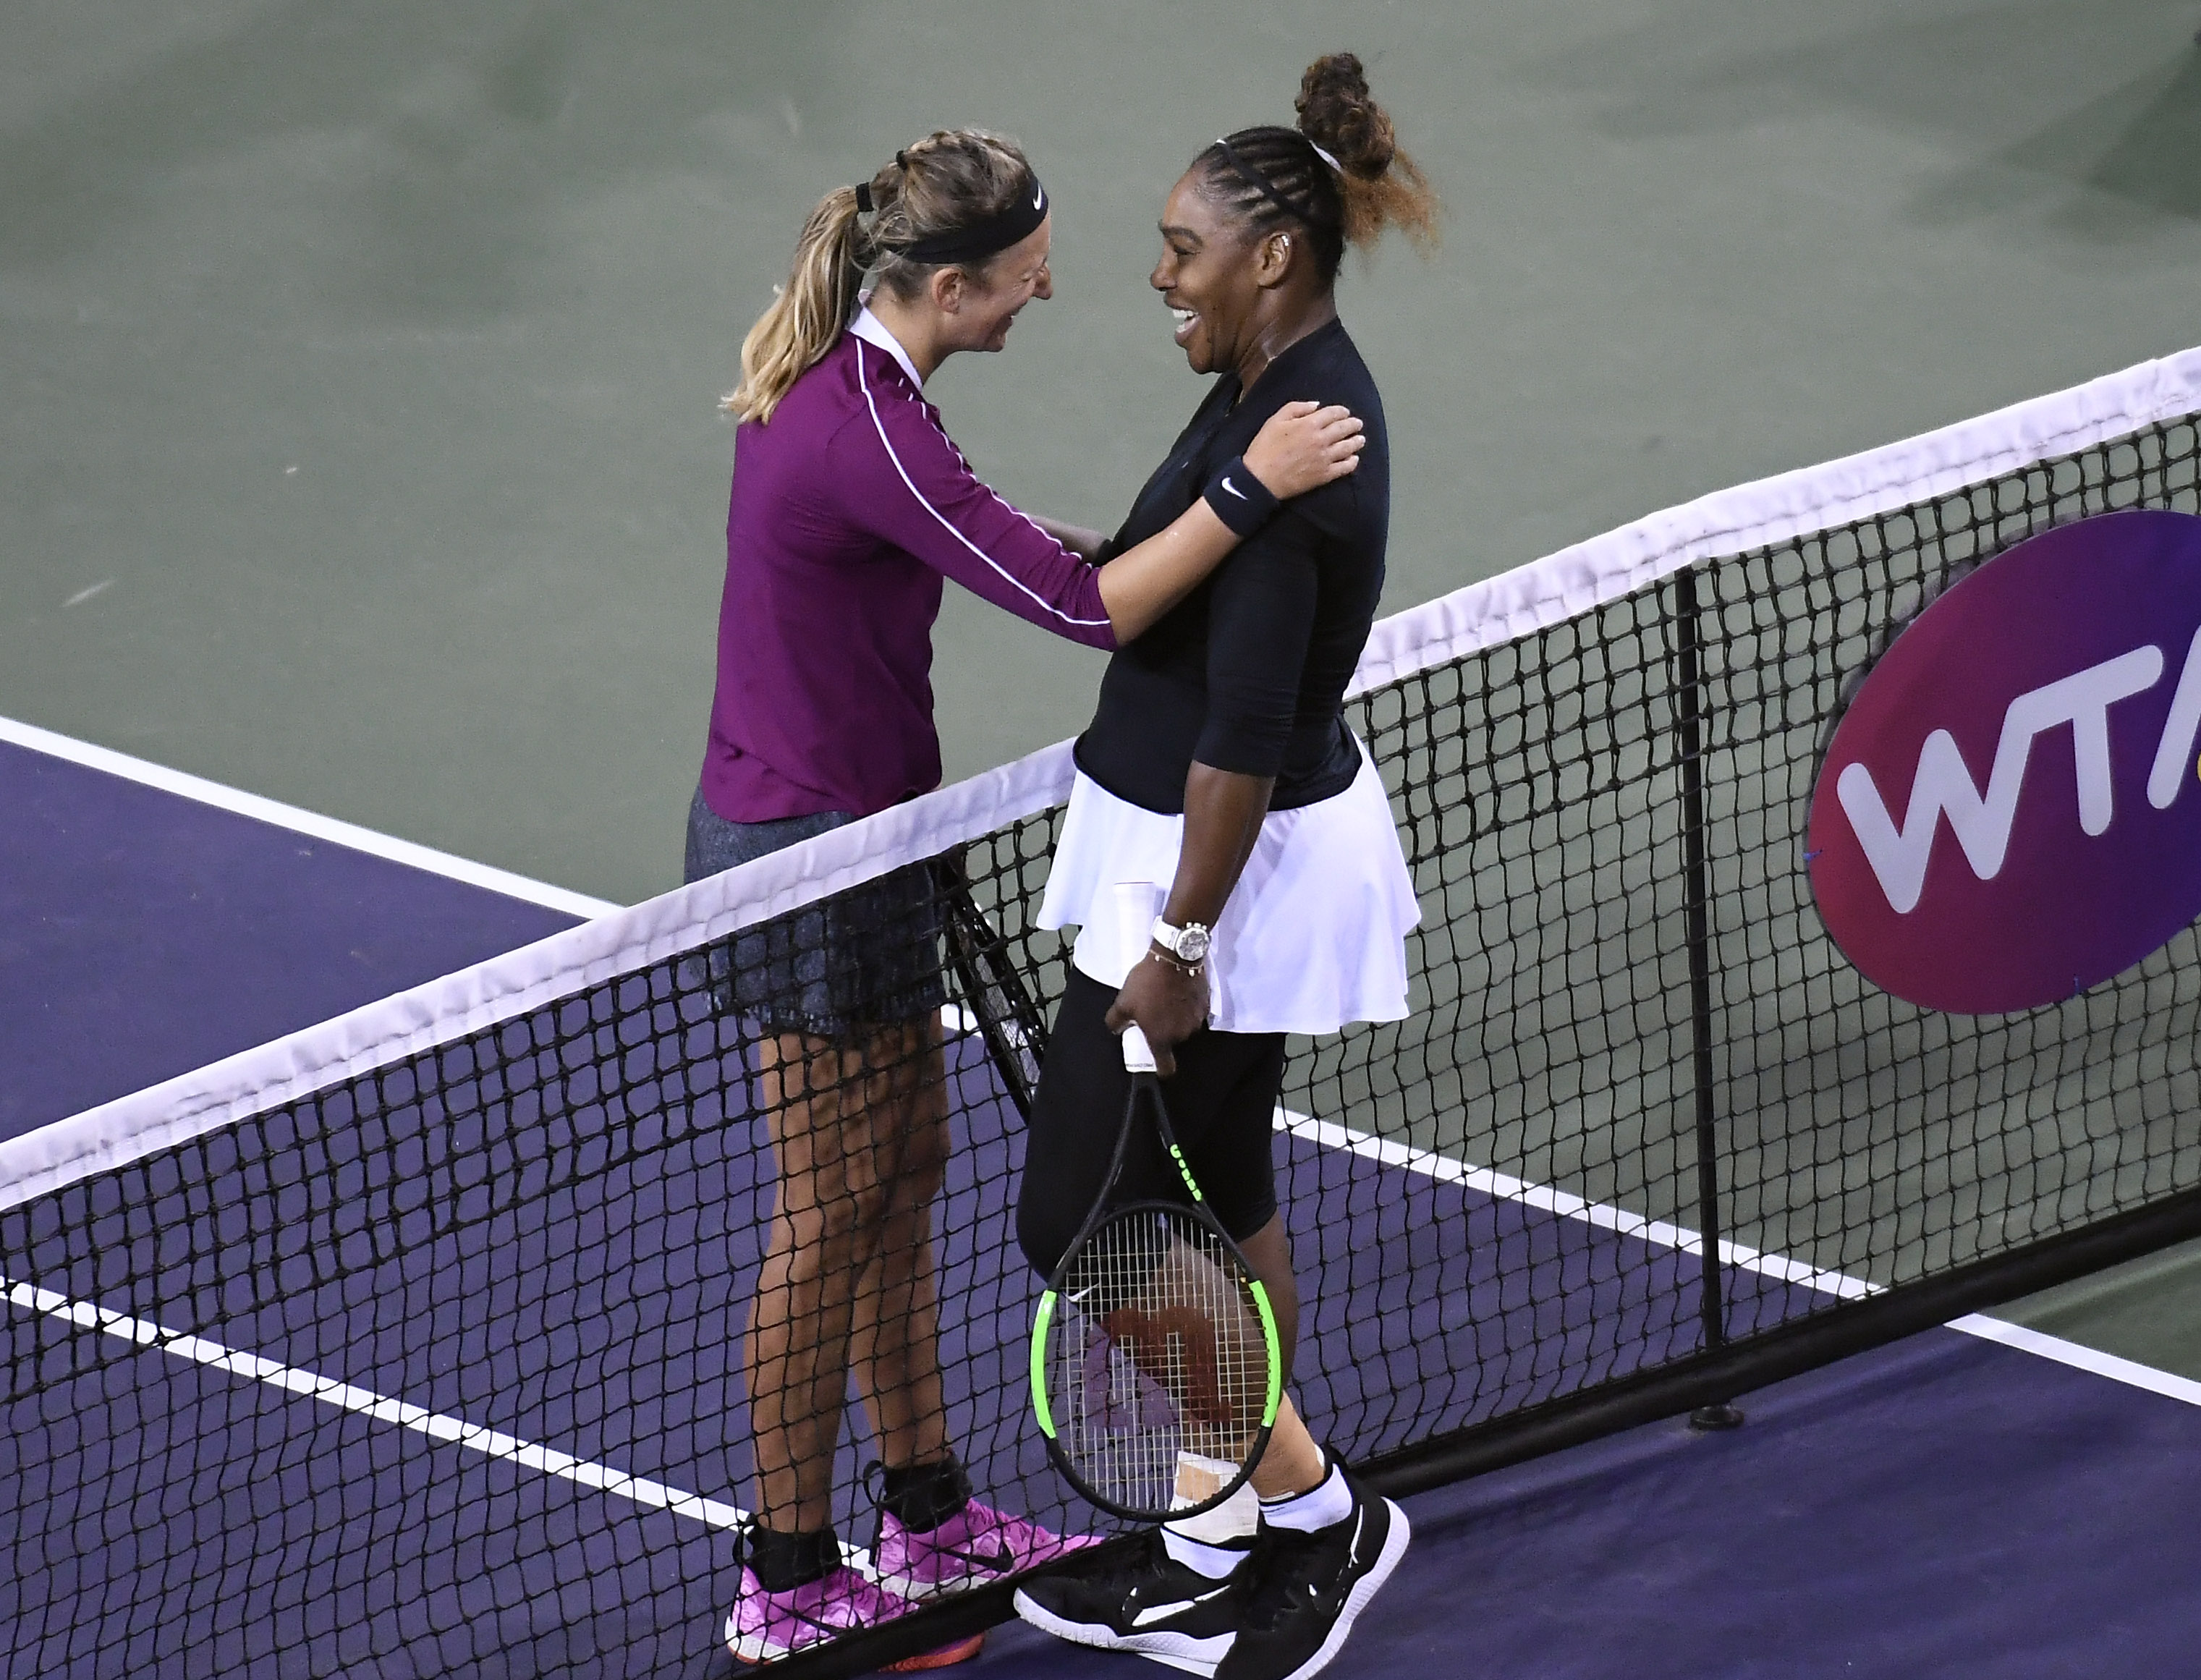 Serena Williams and Victoria Azarenka: Friends, moms and tennis greats set for blockbuster US Open battle